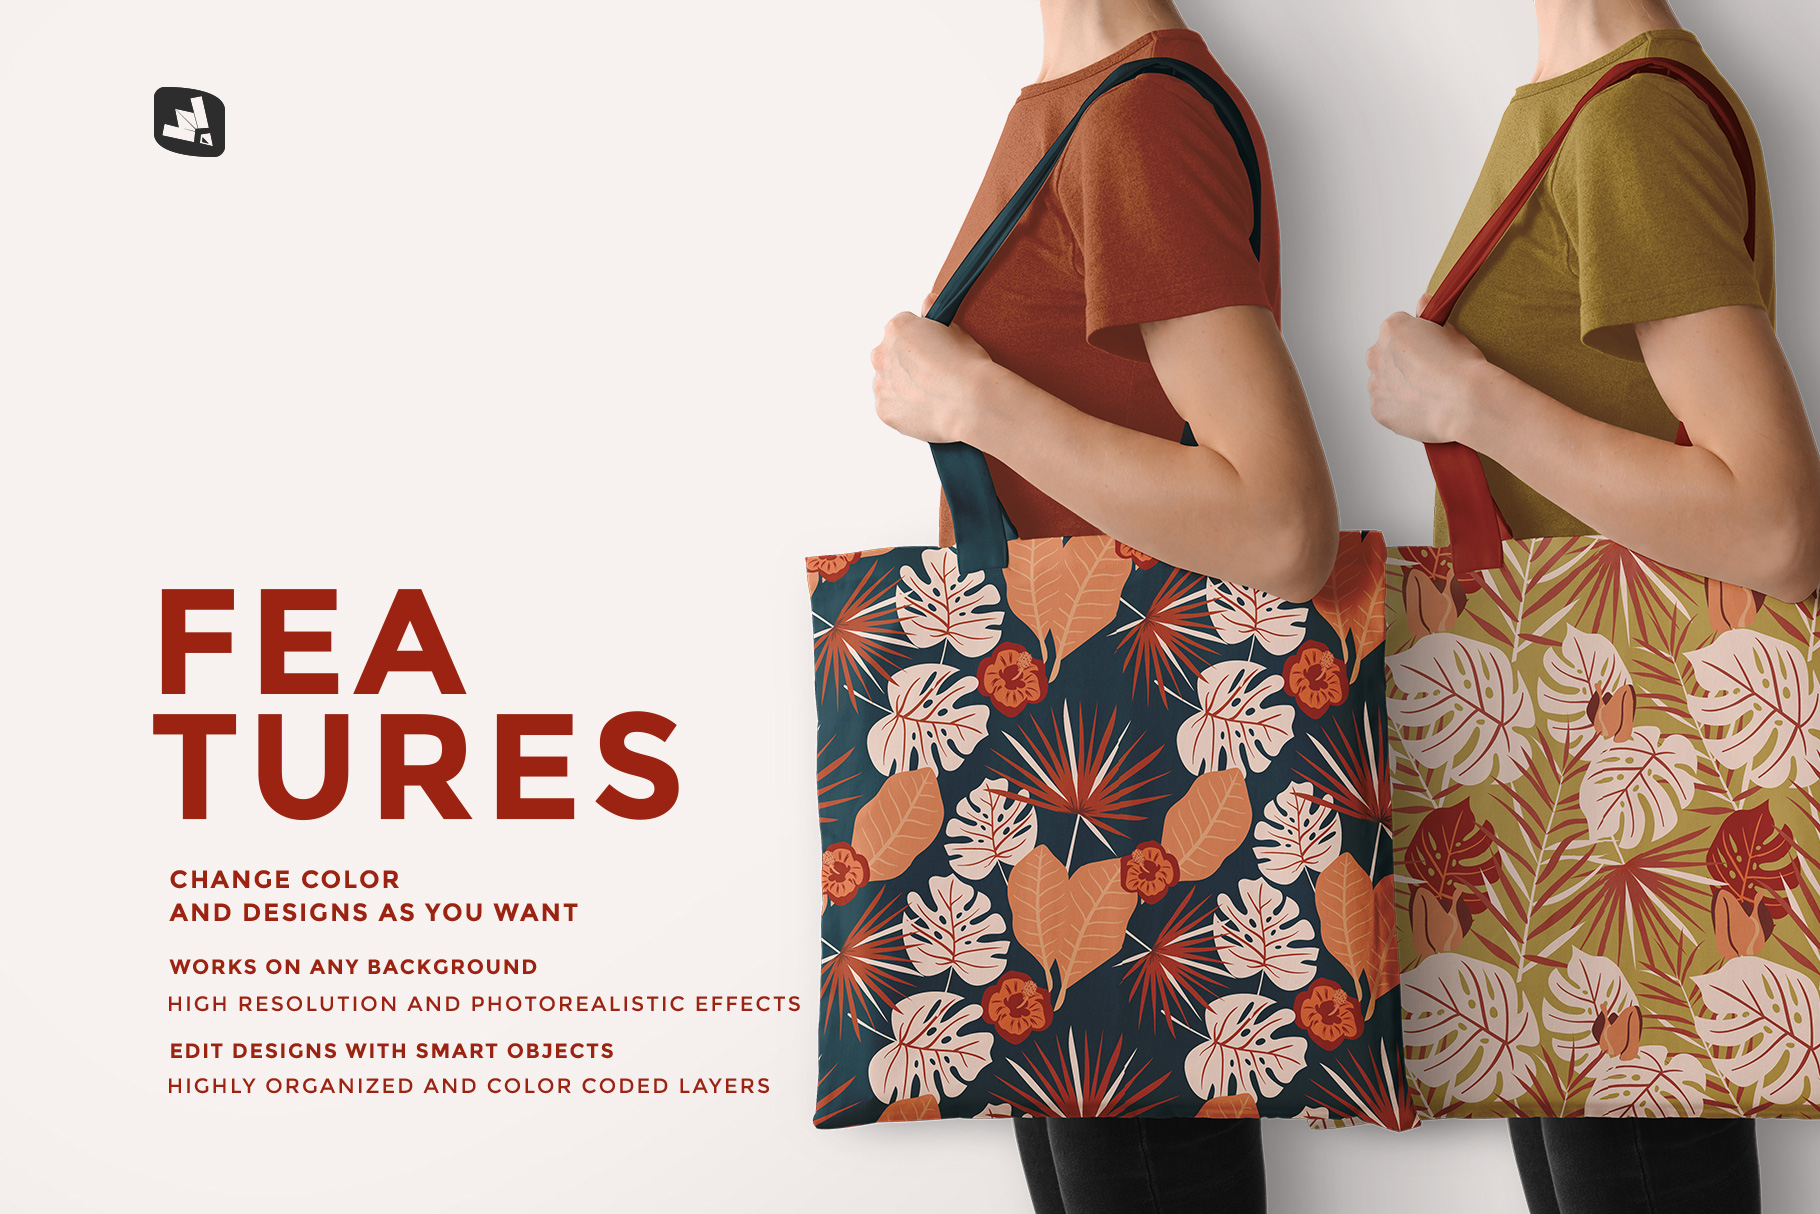 features of the large cotton bag mockup with model